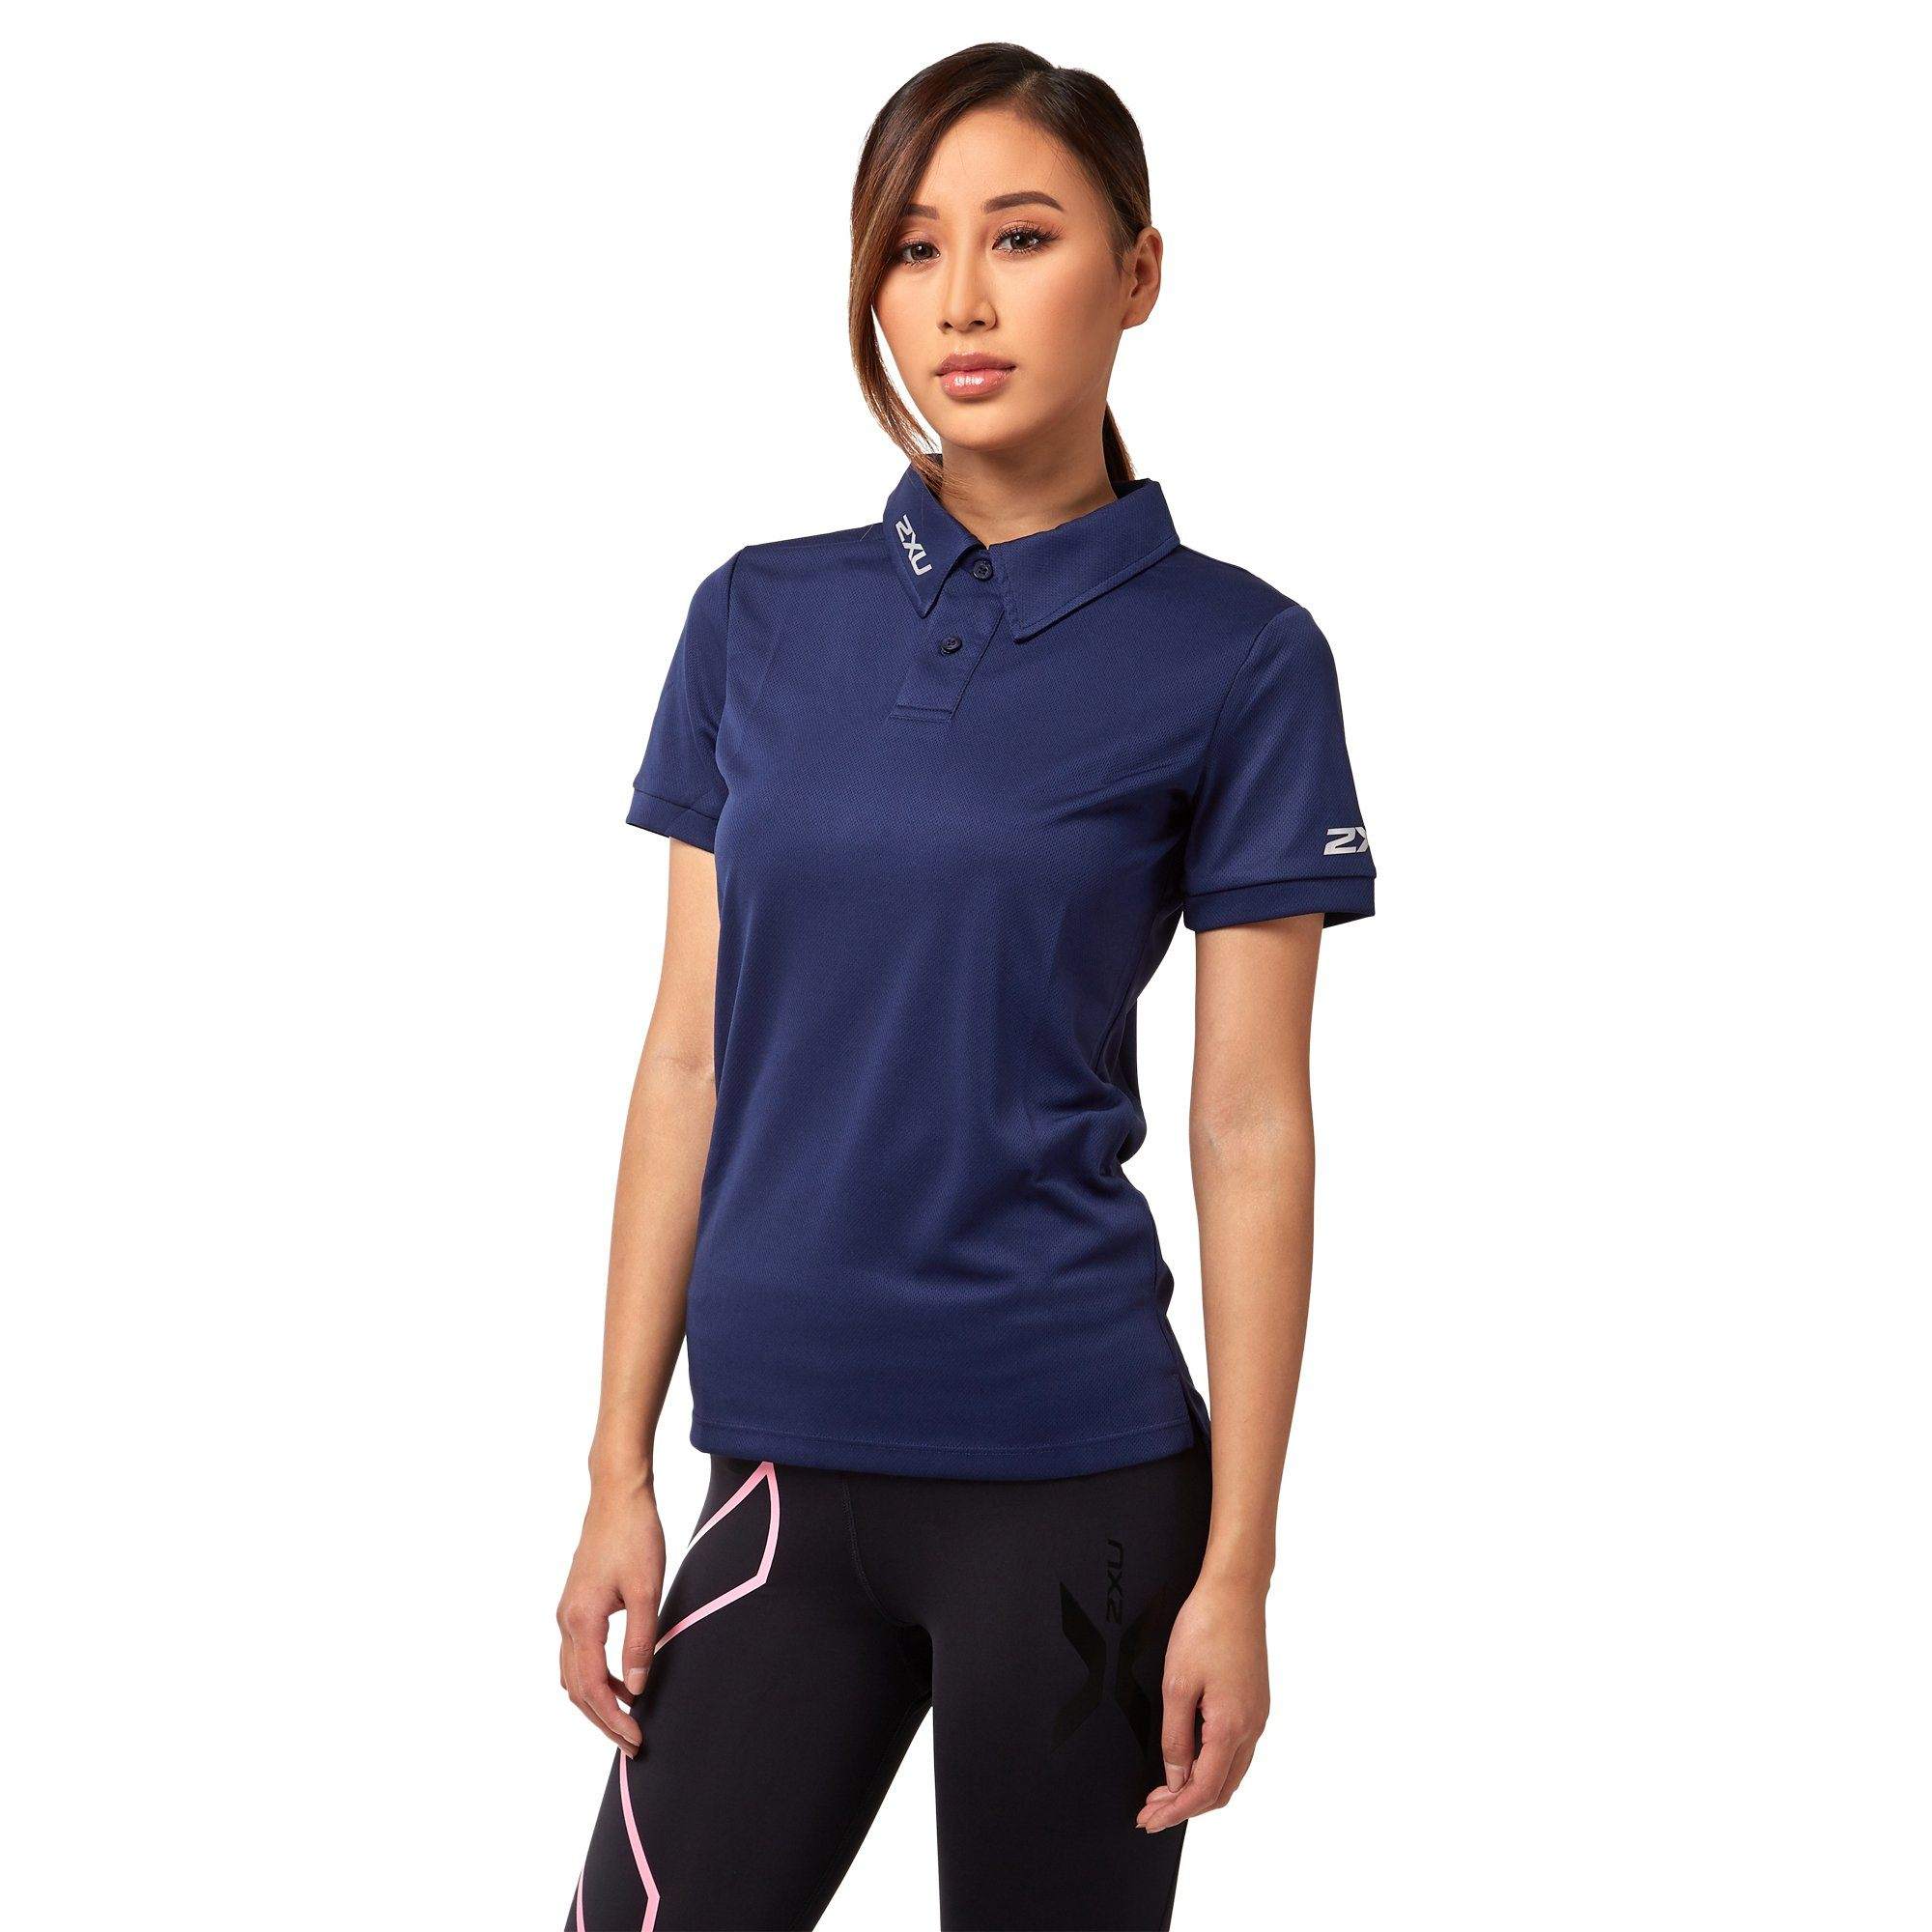 2XU Women's Performance Polo - Navy Apparel 2XU